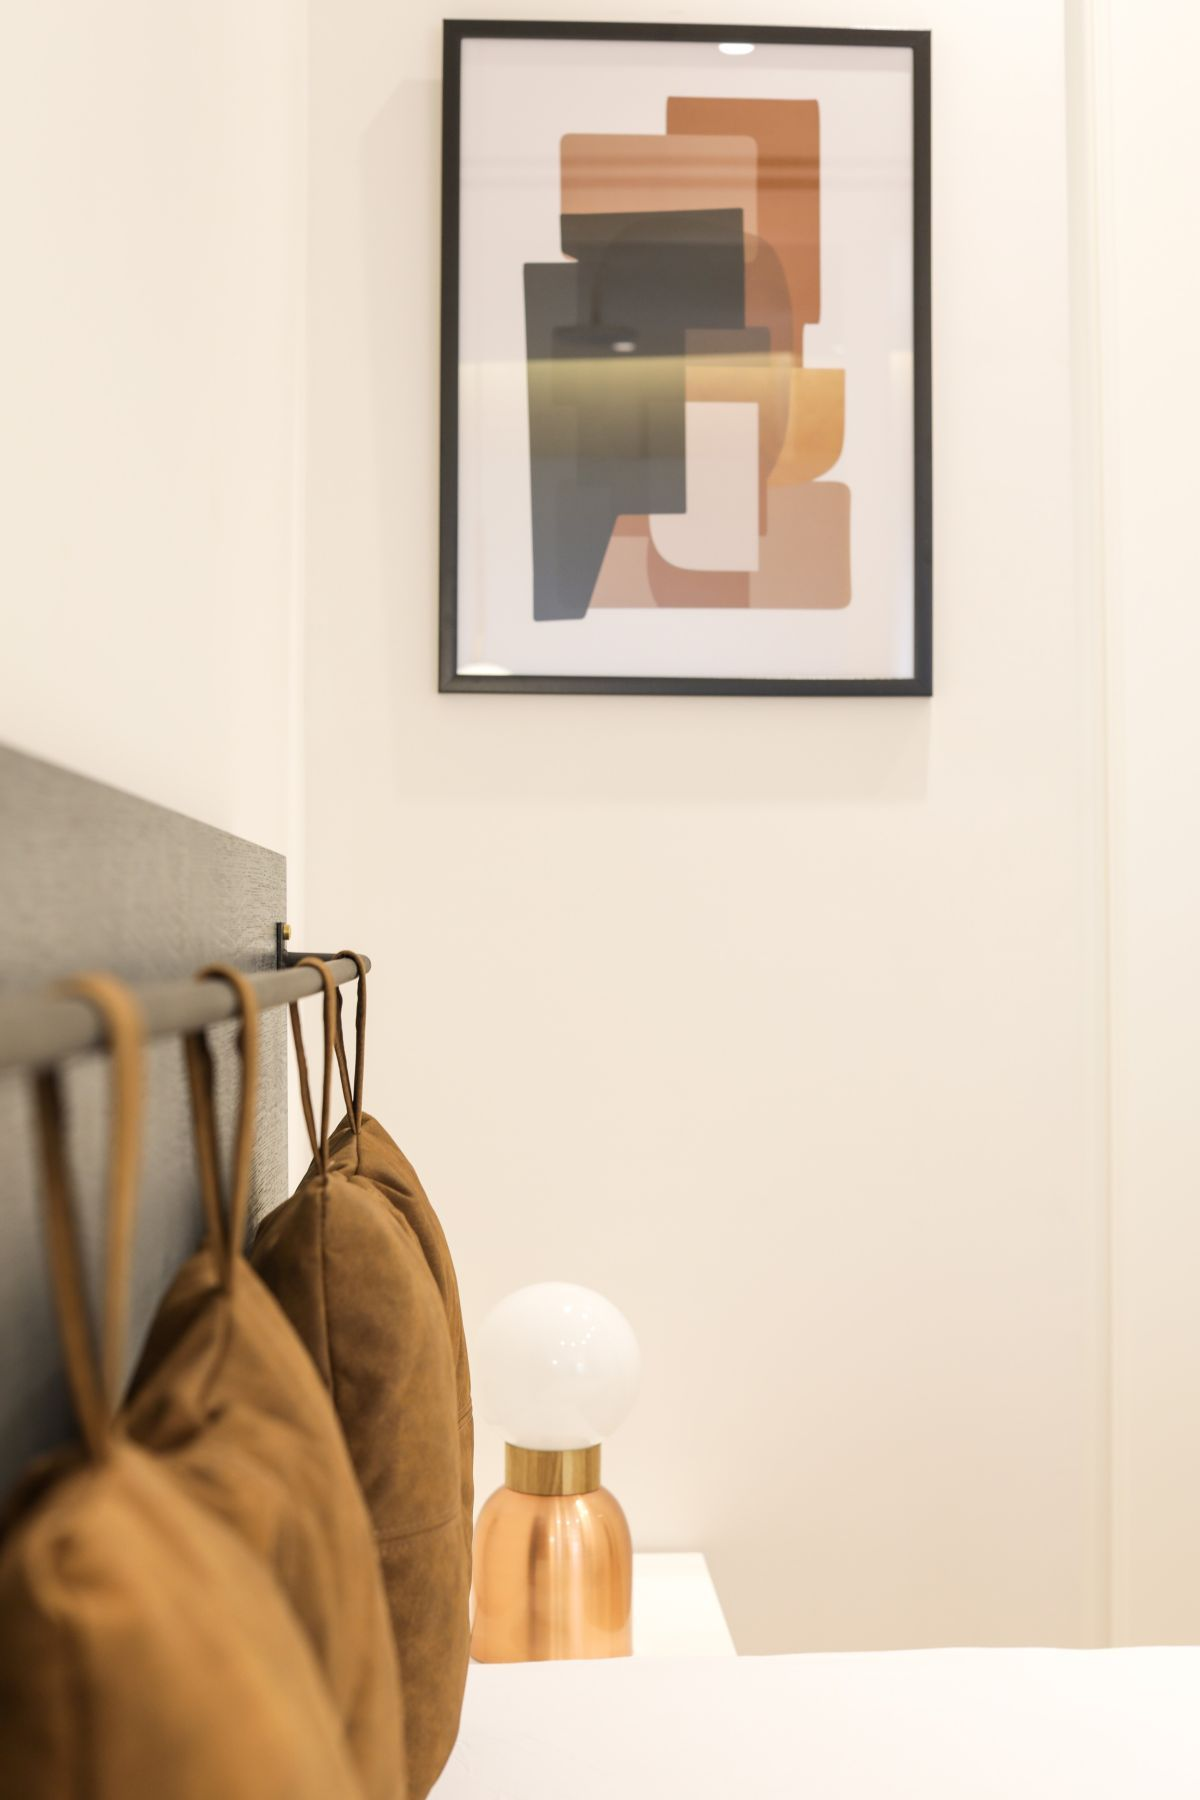 A small piece of art on the side adds an accent without taking center stage.